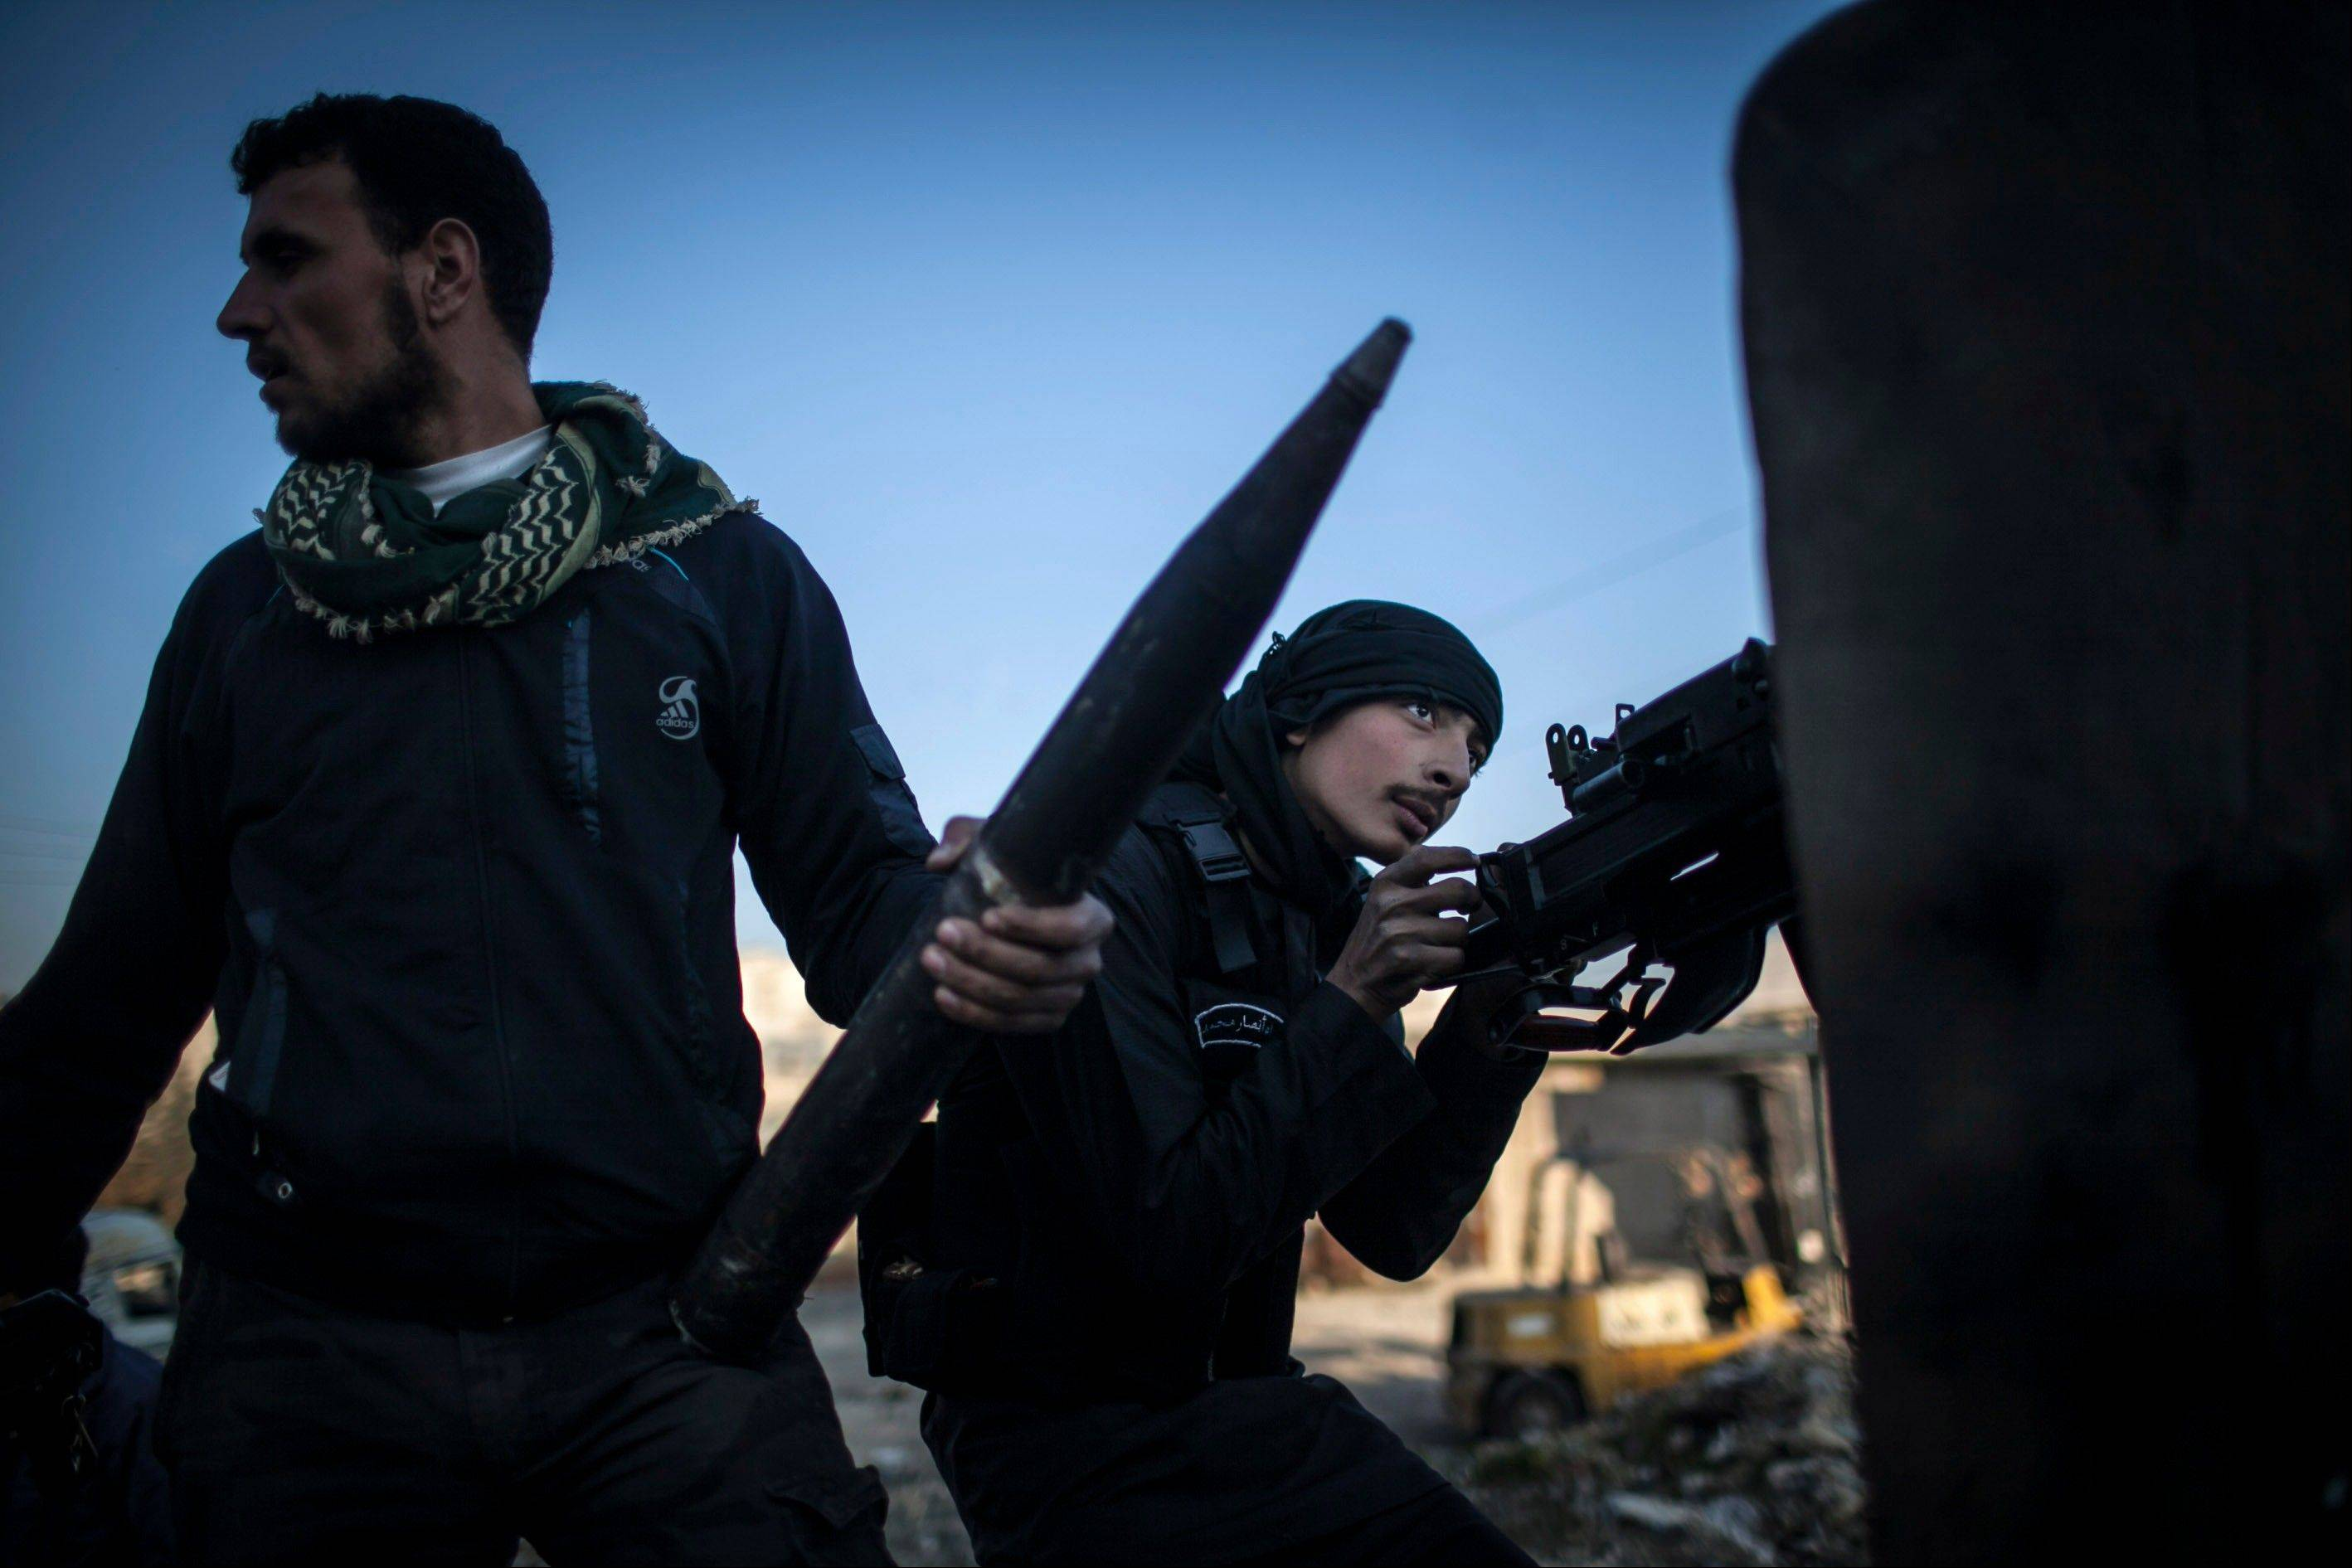 A Free Syrian Army fighter aims his weapon Tuesday during clashes with government forces in Aleppo, Syria.